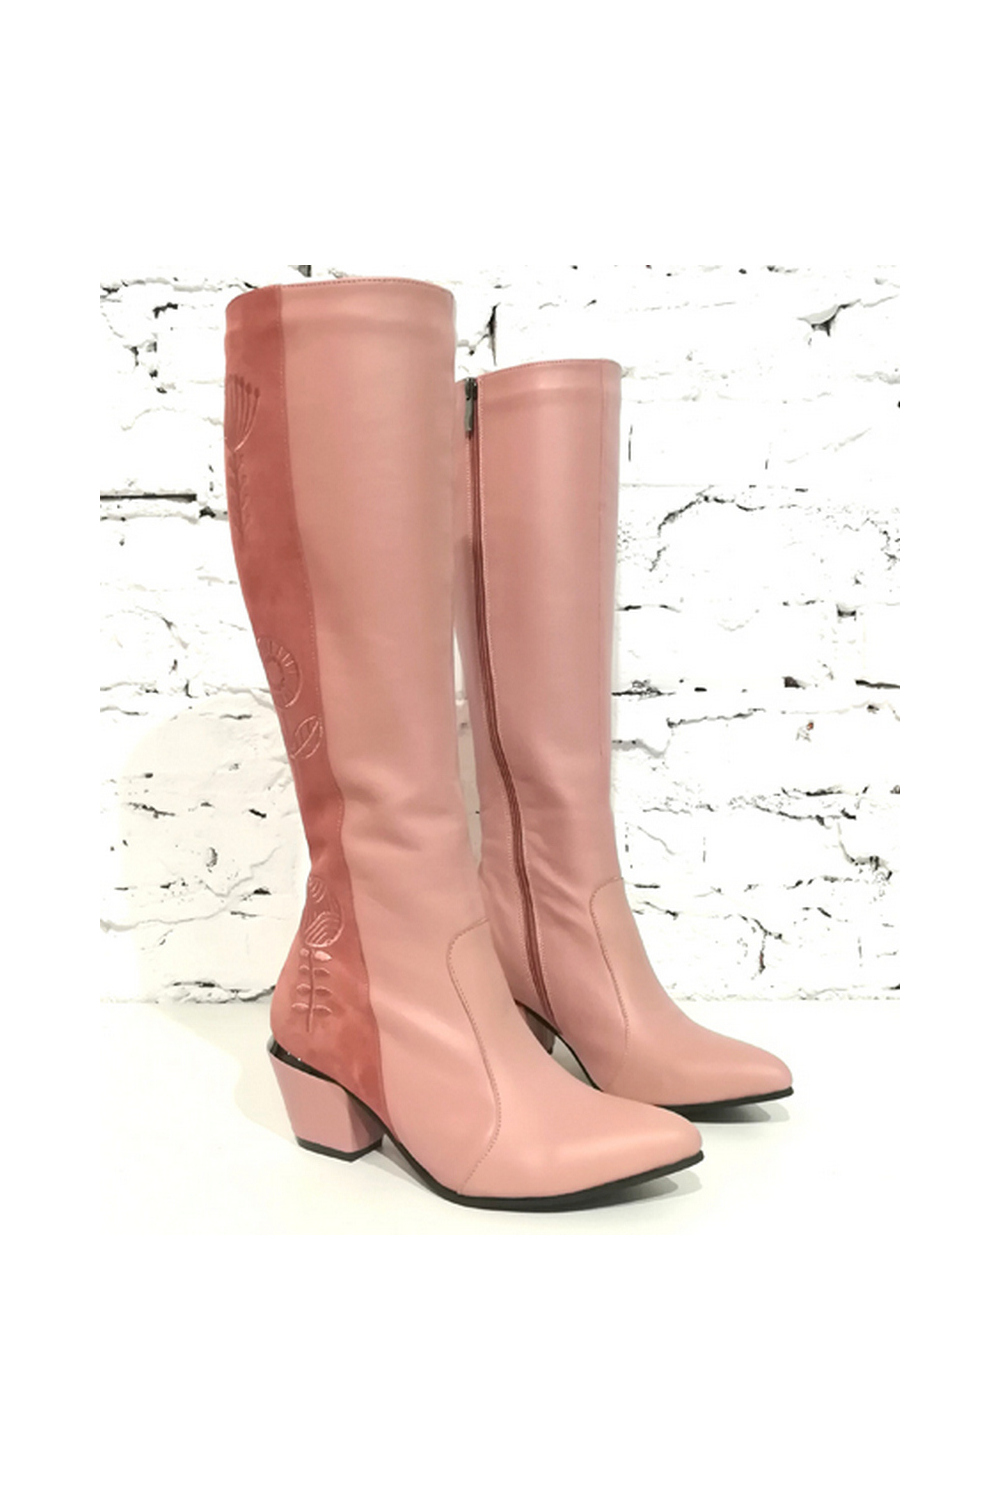 Buy Women's Pink High Leather Zipper Boots with Embroidered Sock Mid Heel, Comfotrable design shoes